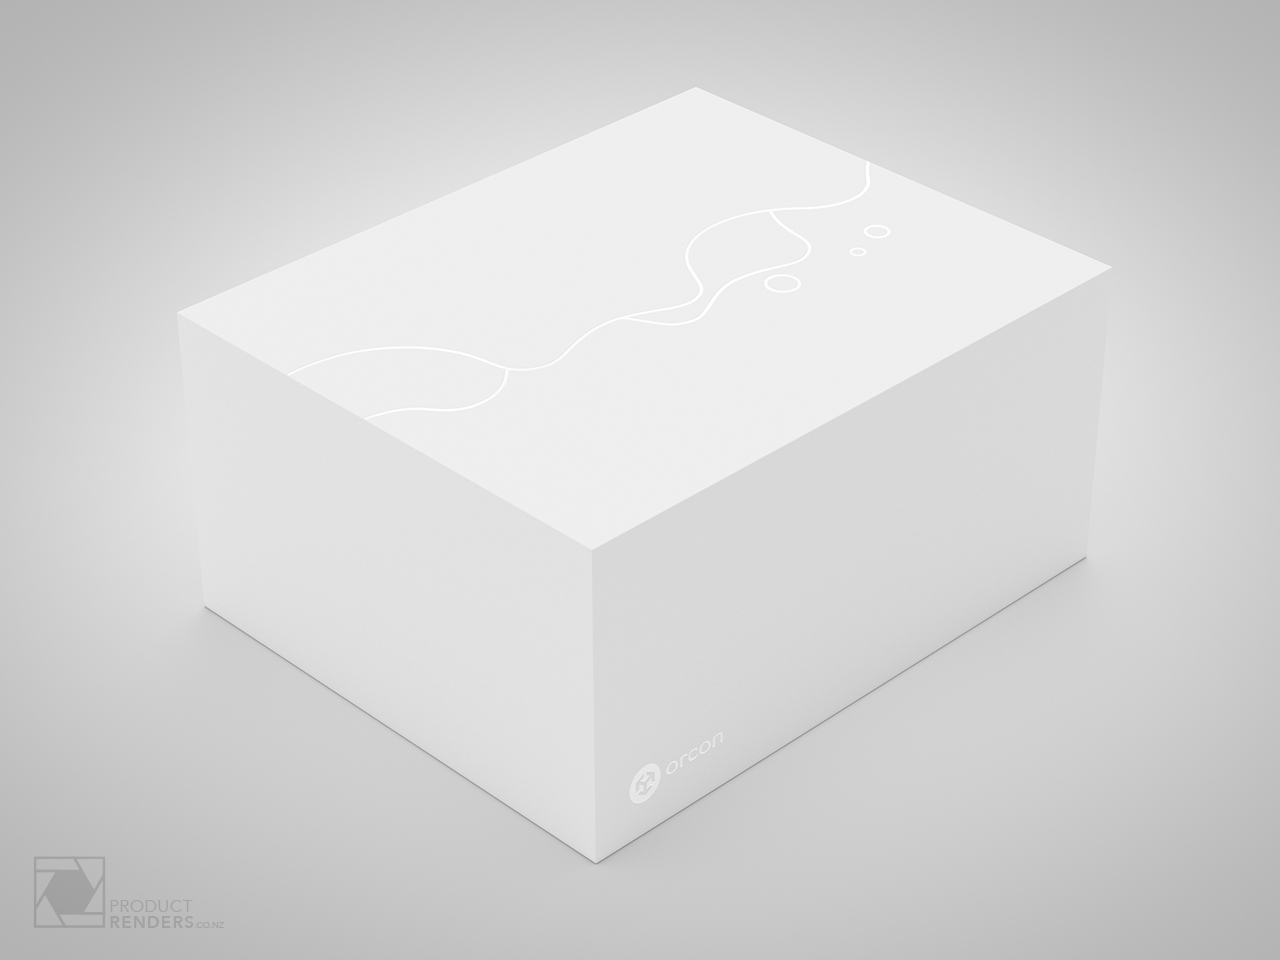 3D render of the closed Orcon modem packaging designed by ThinkPackaging